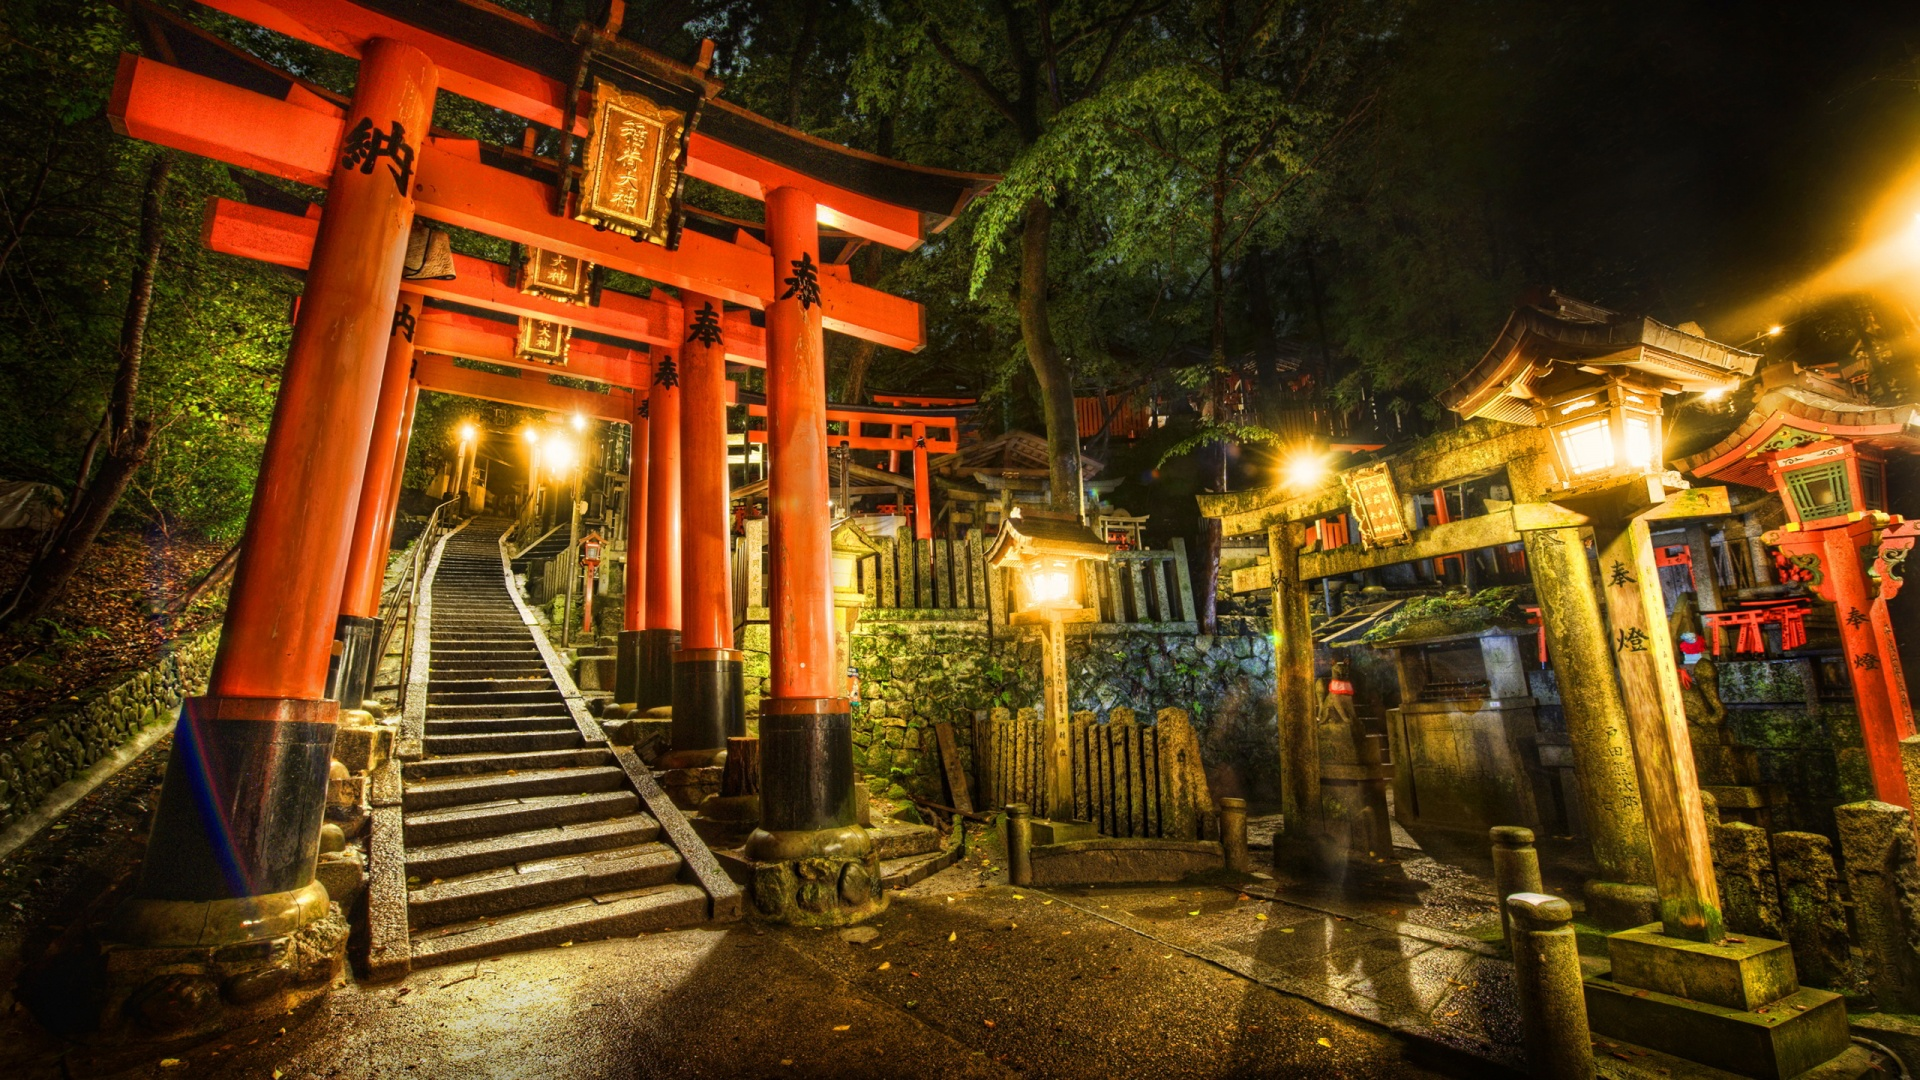 Widescreen Wallpapers of Japan › Awesome Wallpapers